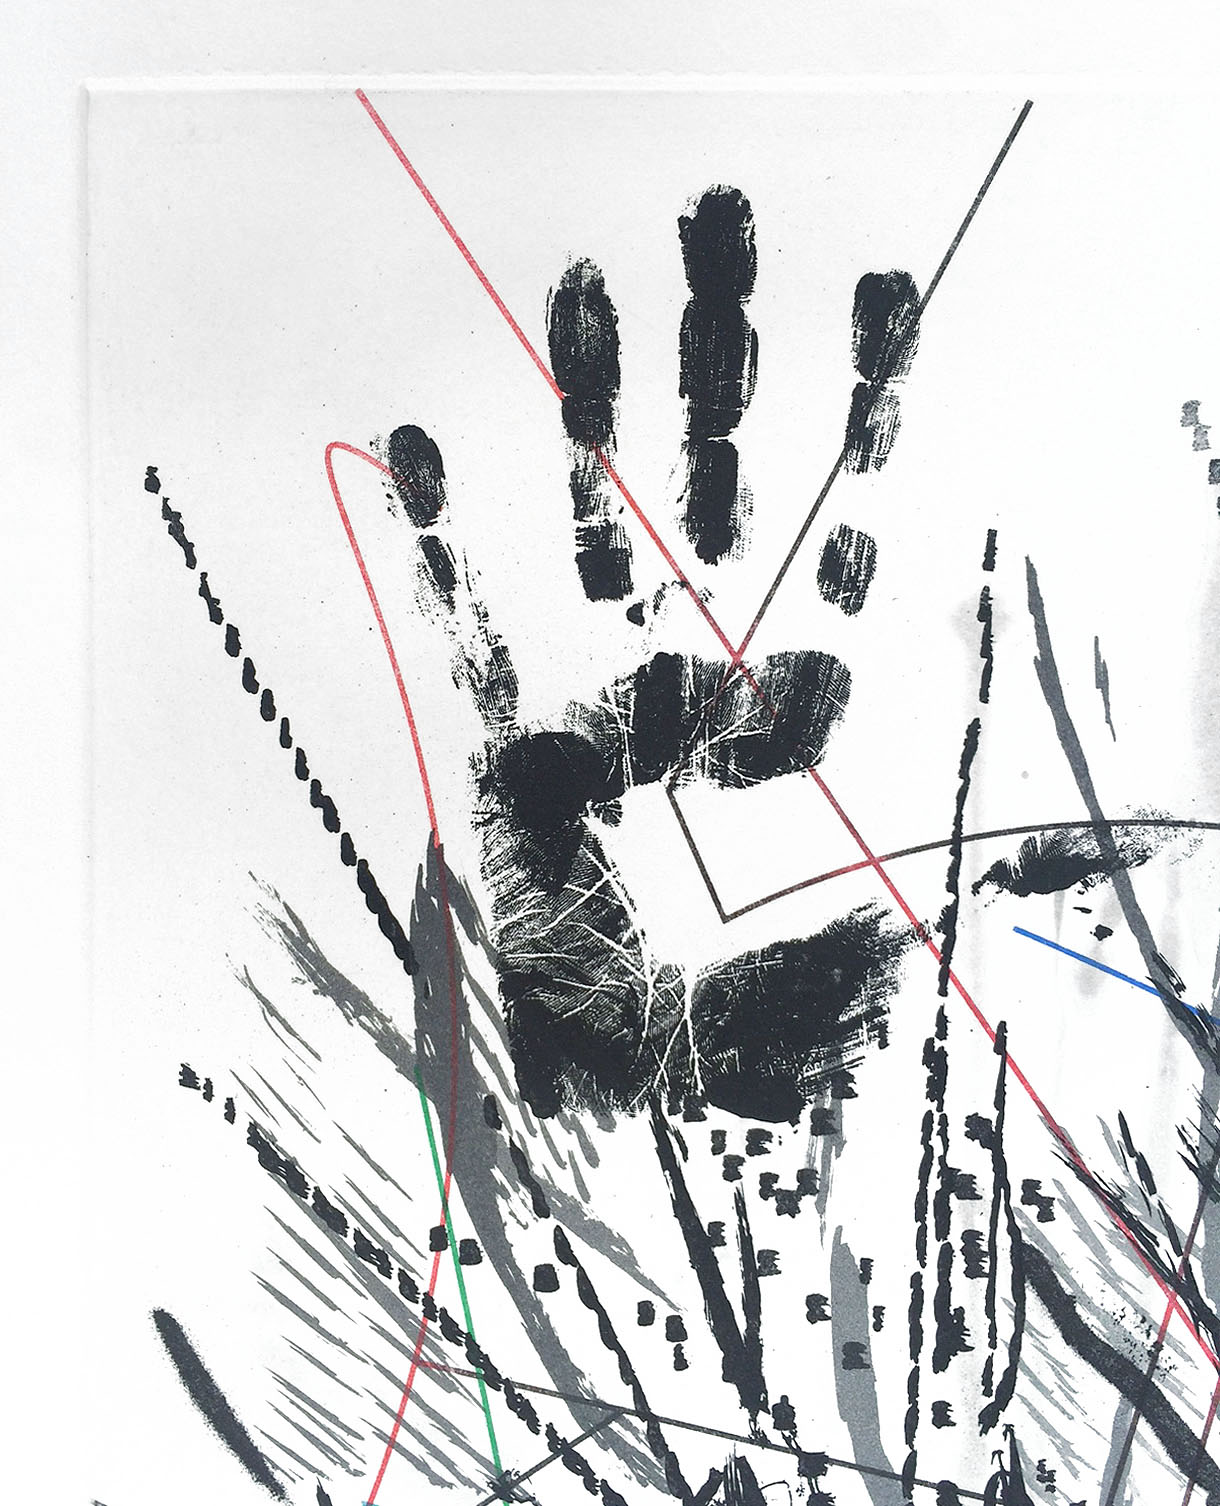 Detail. In addition to making marks with paintbrush, sticks,and airbrush, Mehretu used her hands and arms to attack the surface.